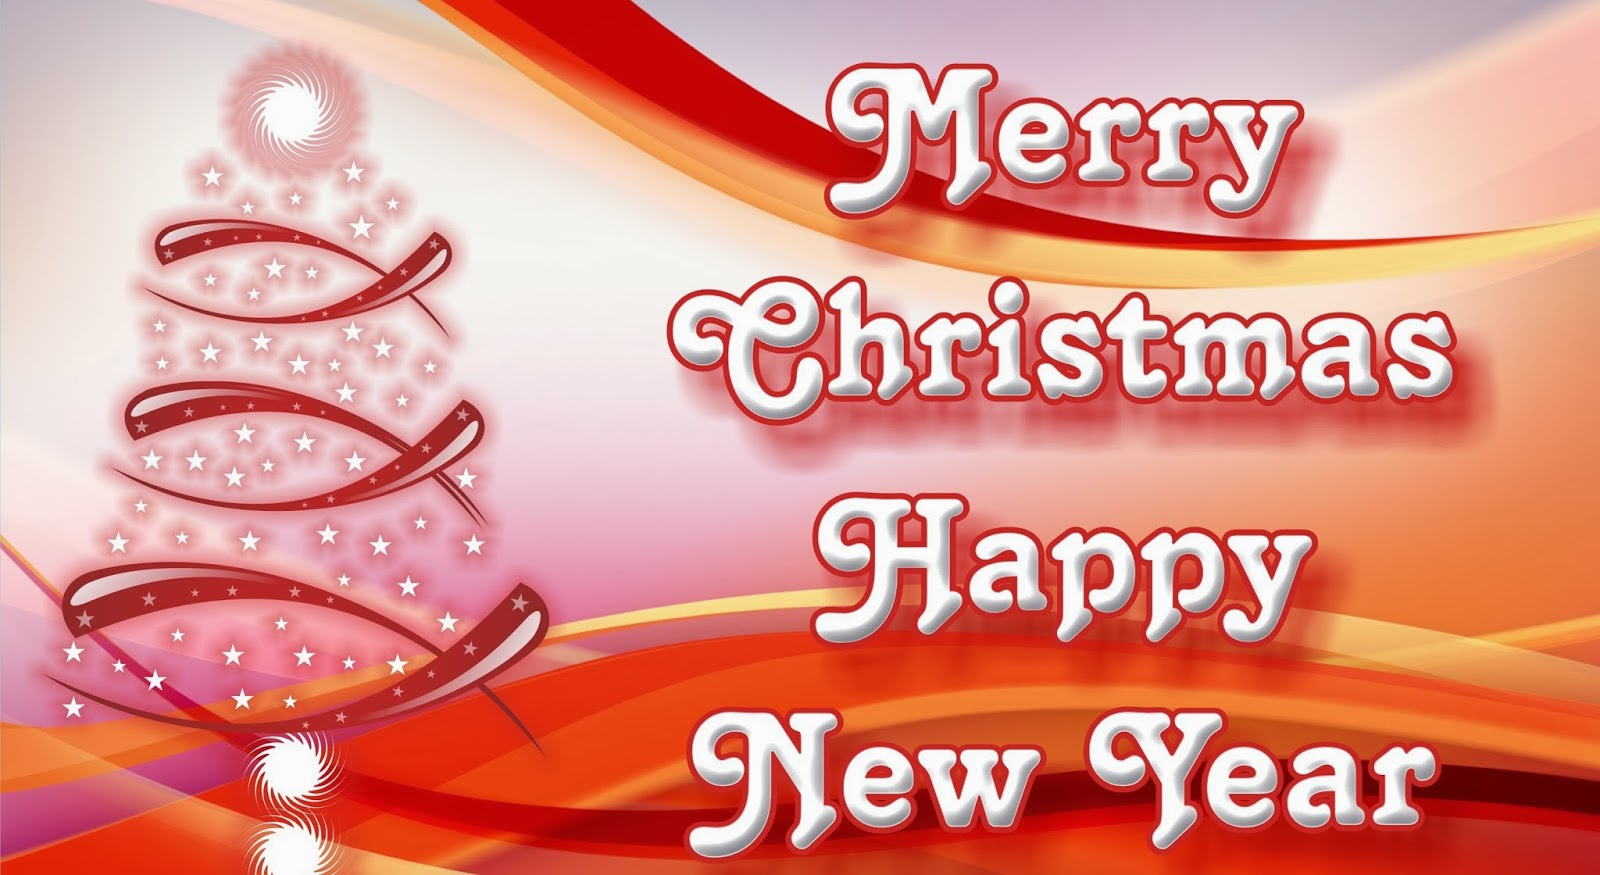 Merry Christmas And Happy New Year Quotes. QuotesGram